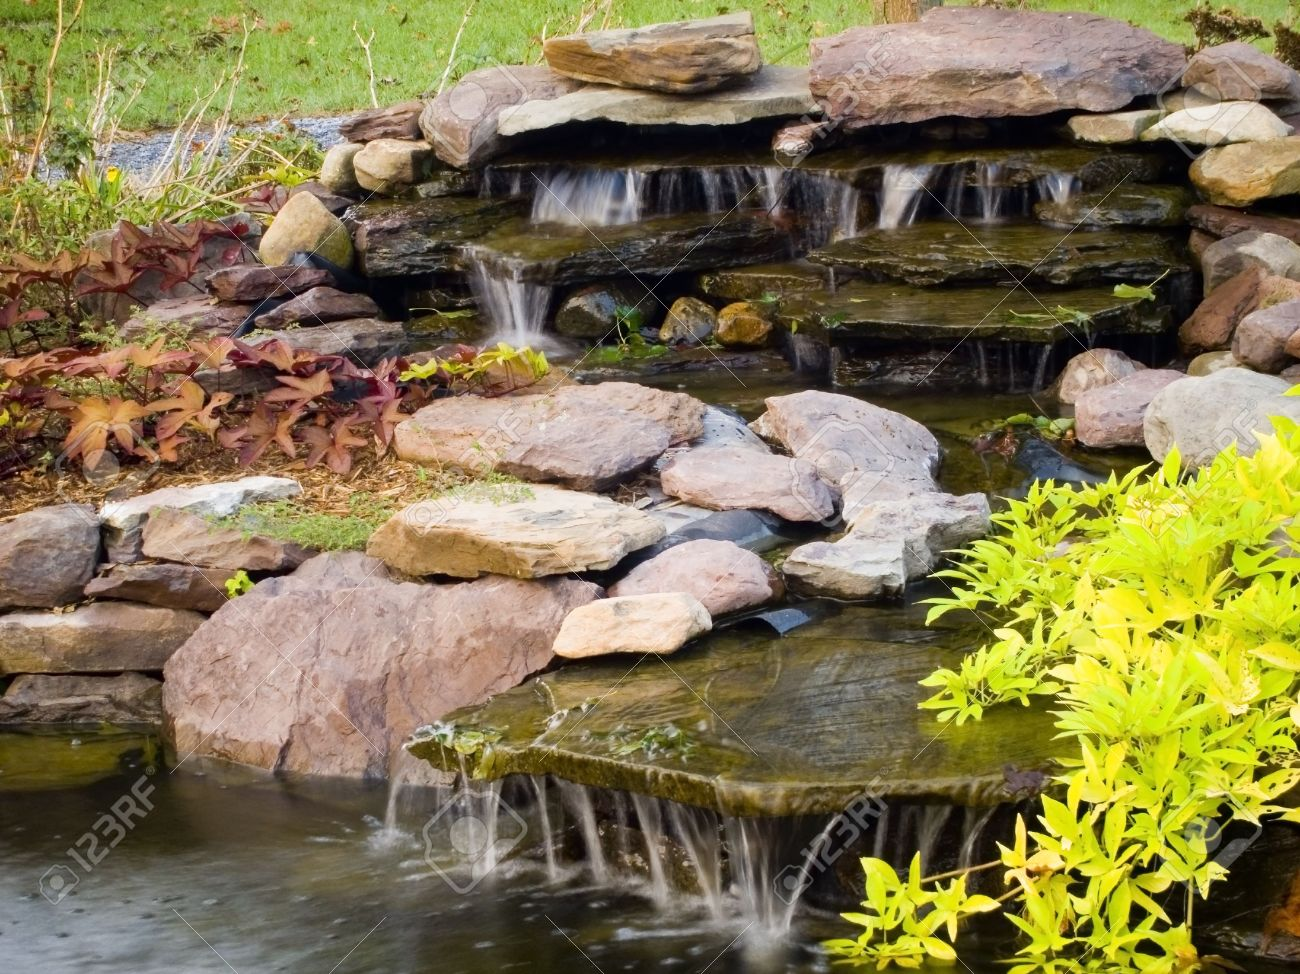 Outdoor ornamental plants - Water Feature With Rocks Ornamental Plants And Flowing Waterfalls Stock Photo 548982